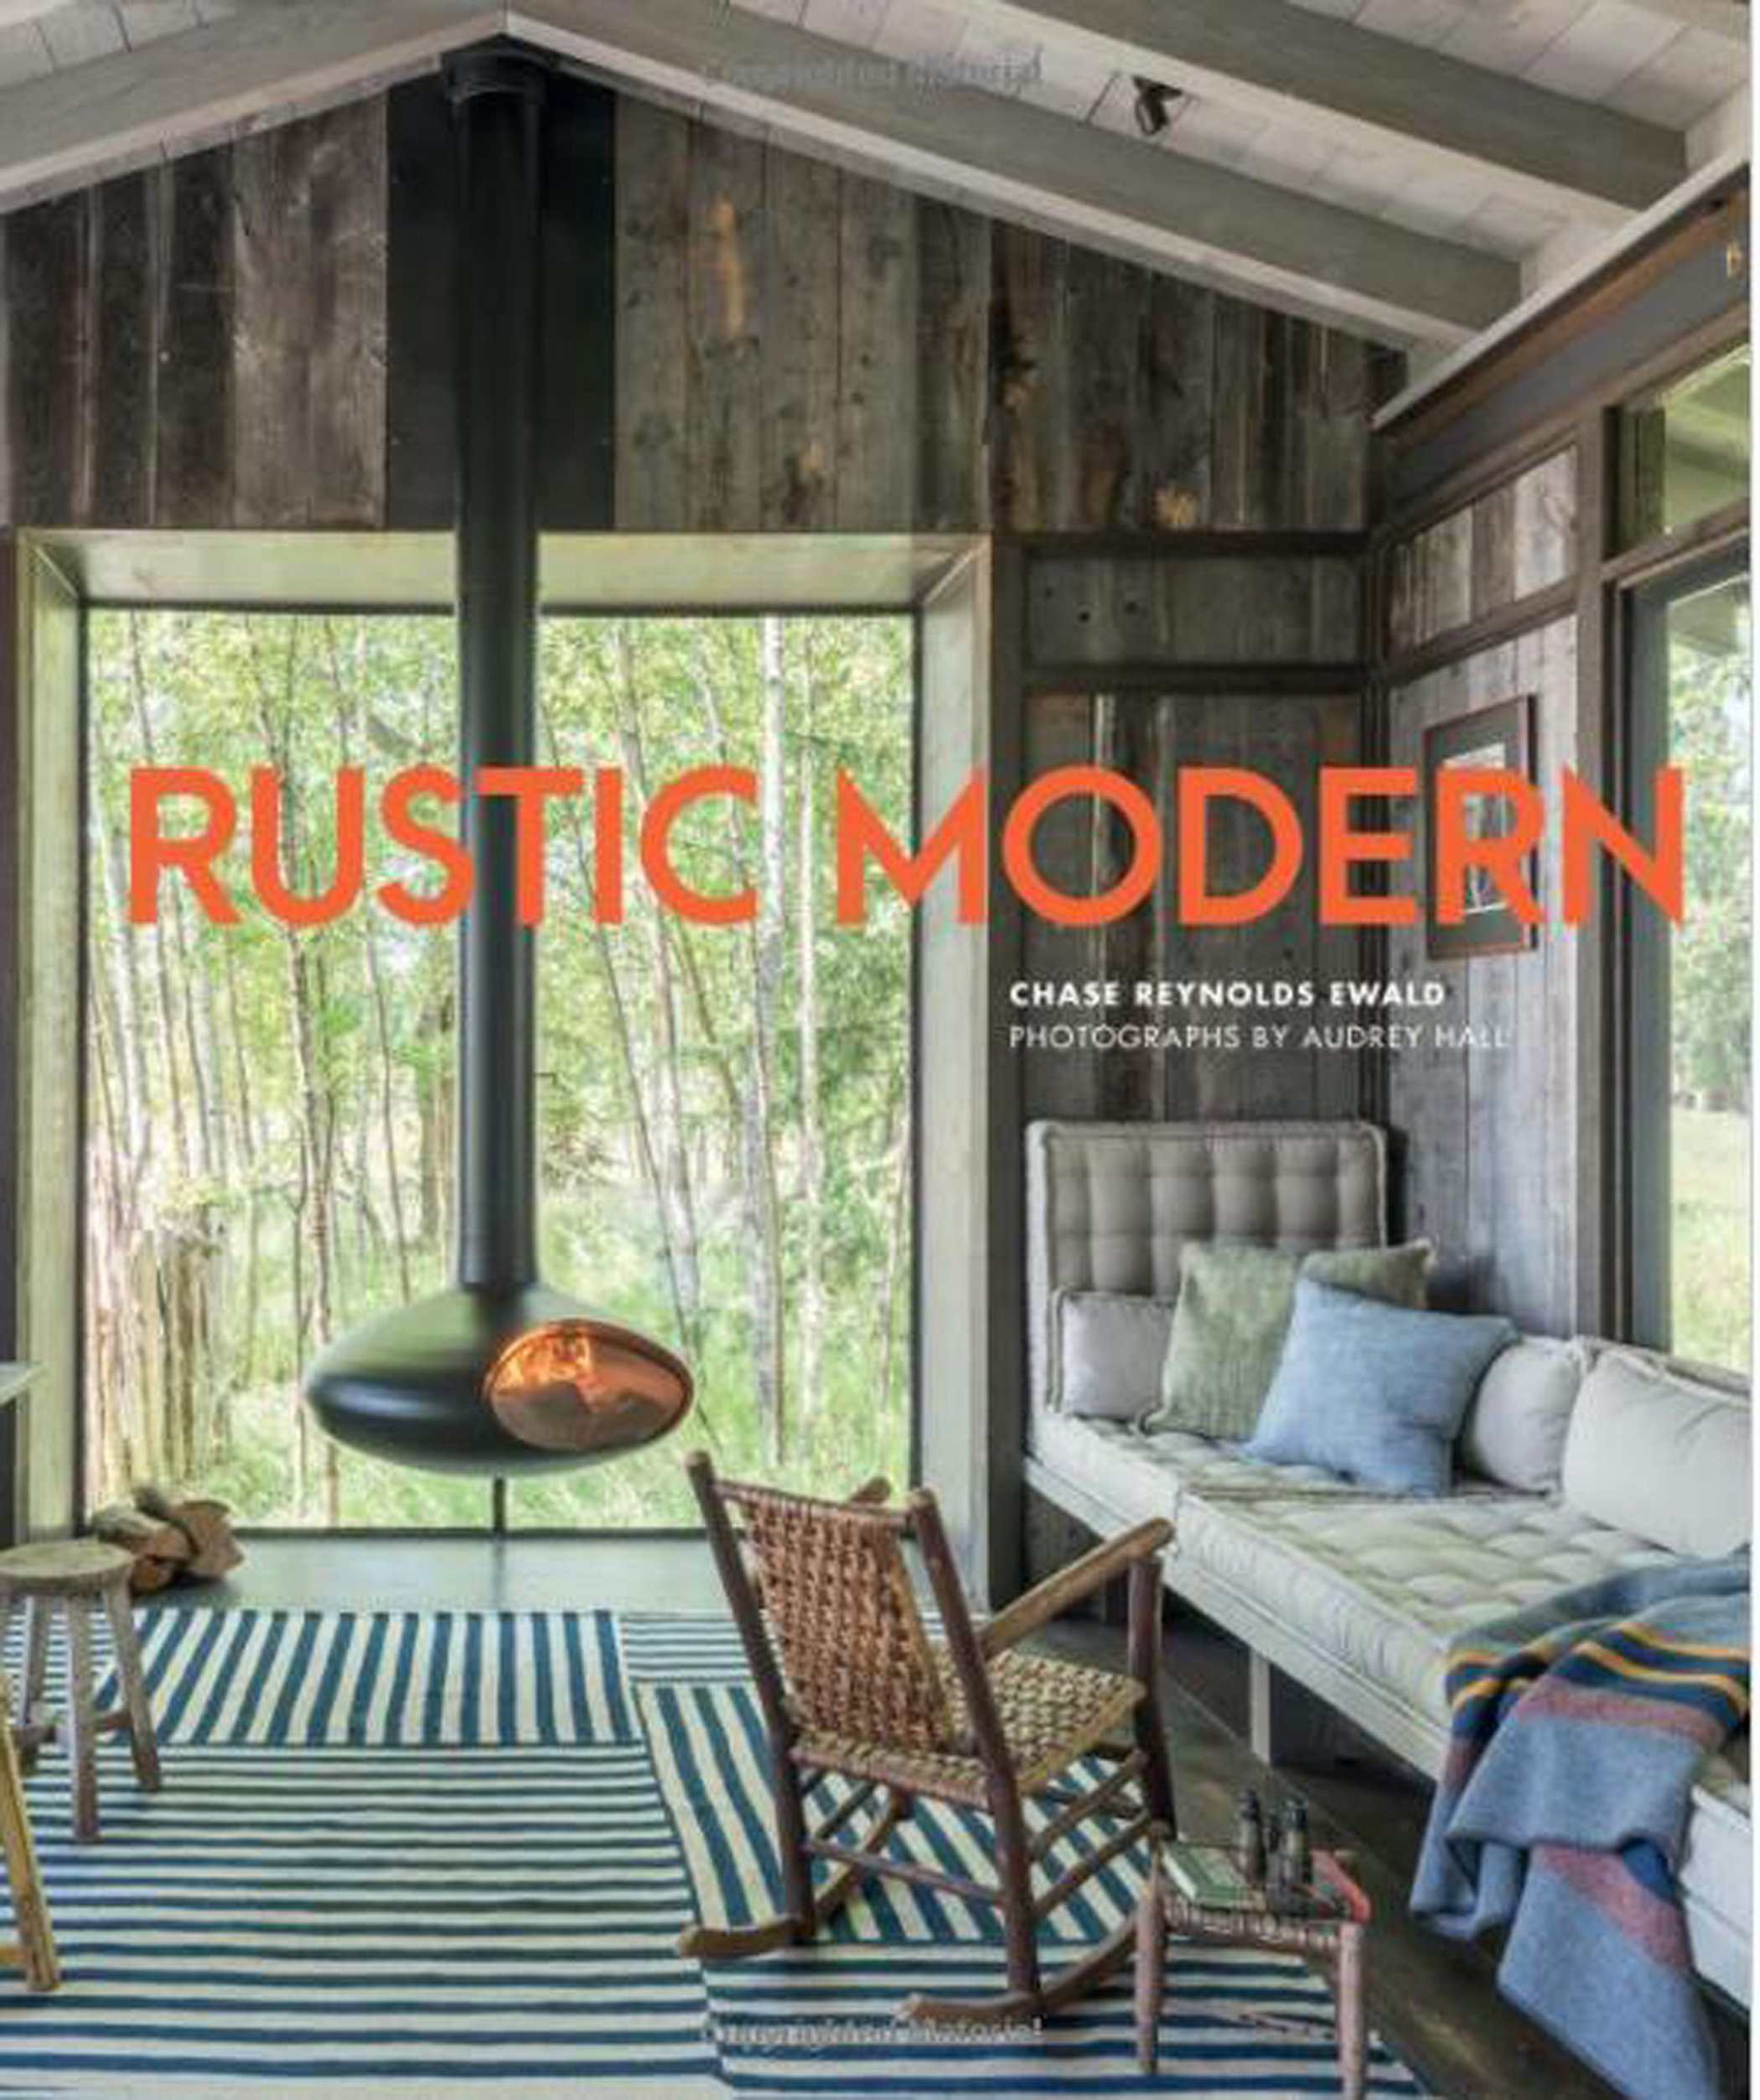 Three luxury mountain west houses by montana architecture firm jlf architects featured in new rustic modern book